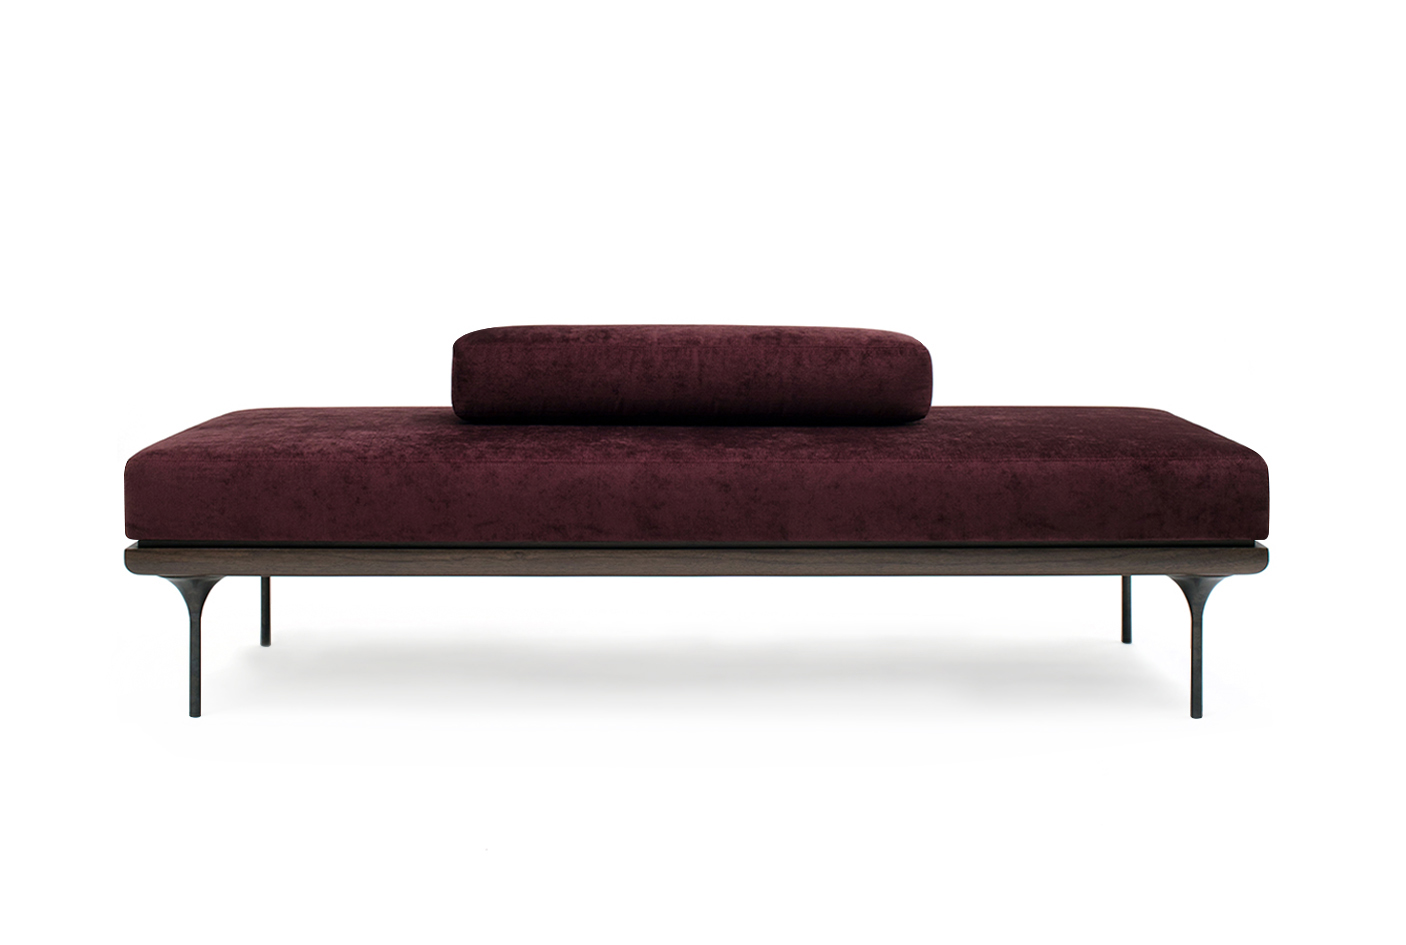 NYX daybed_Comp1-01.jpg